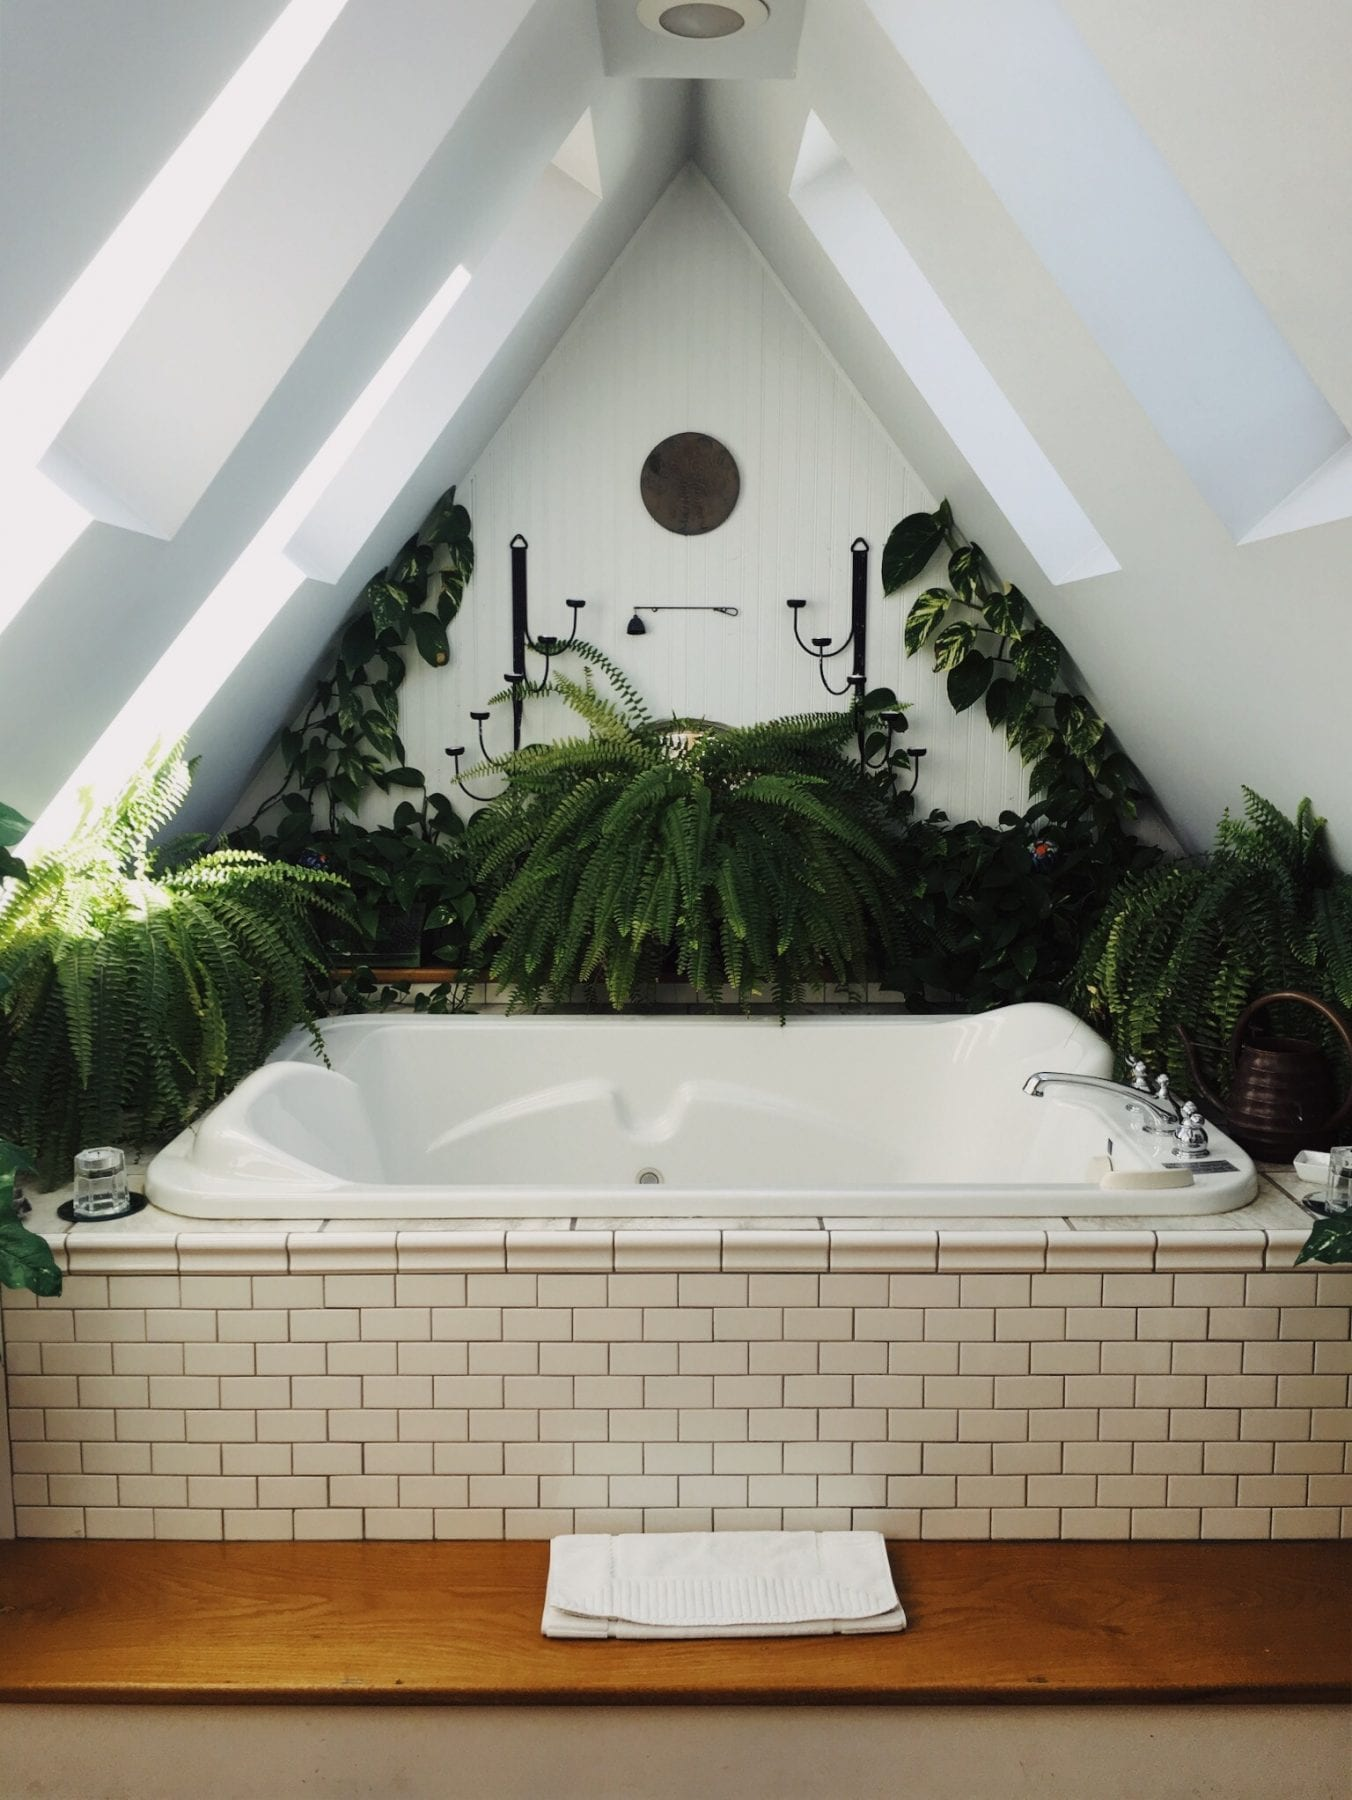 Bathroom surrounded by plants